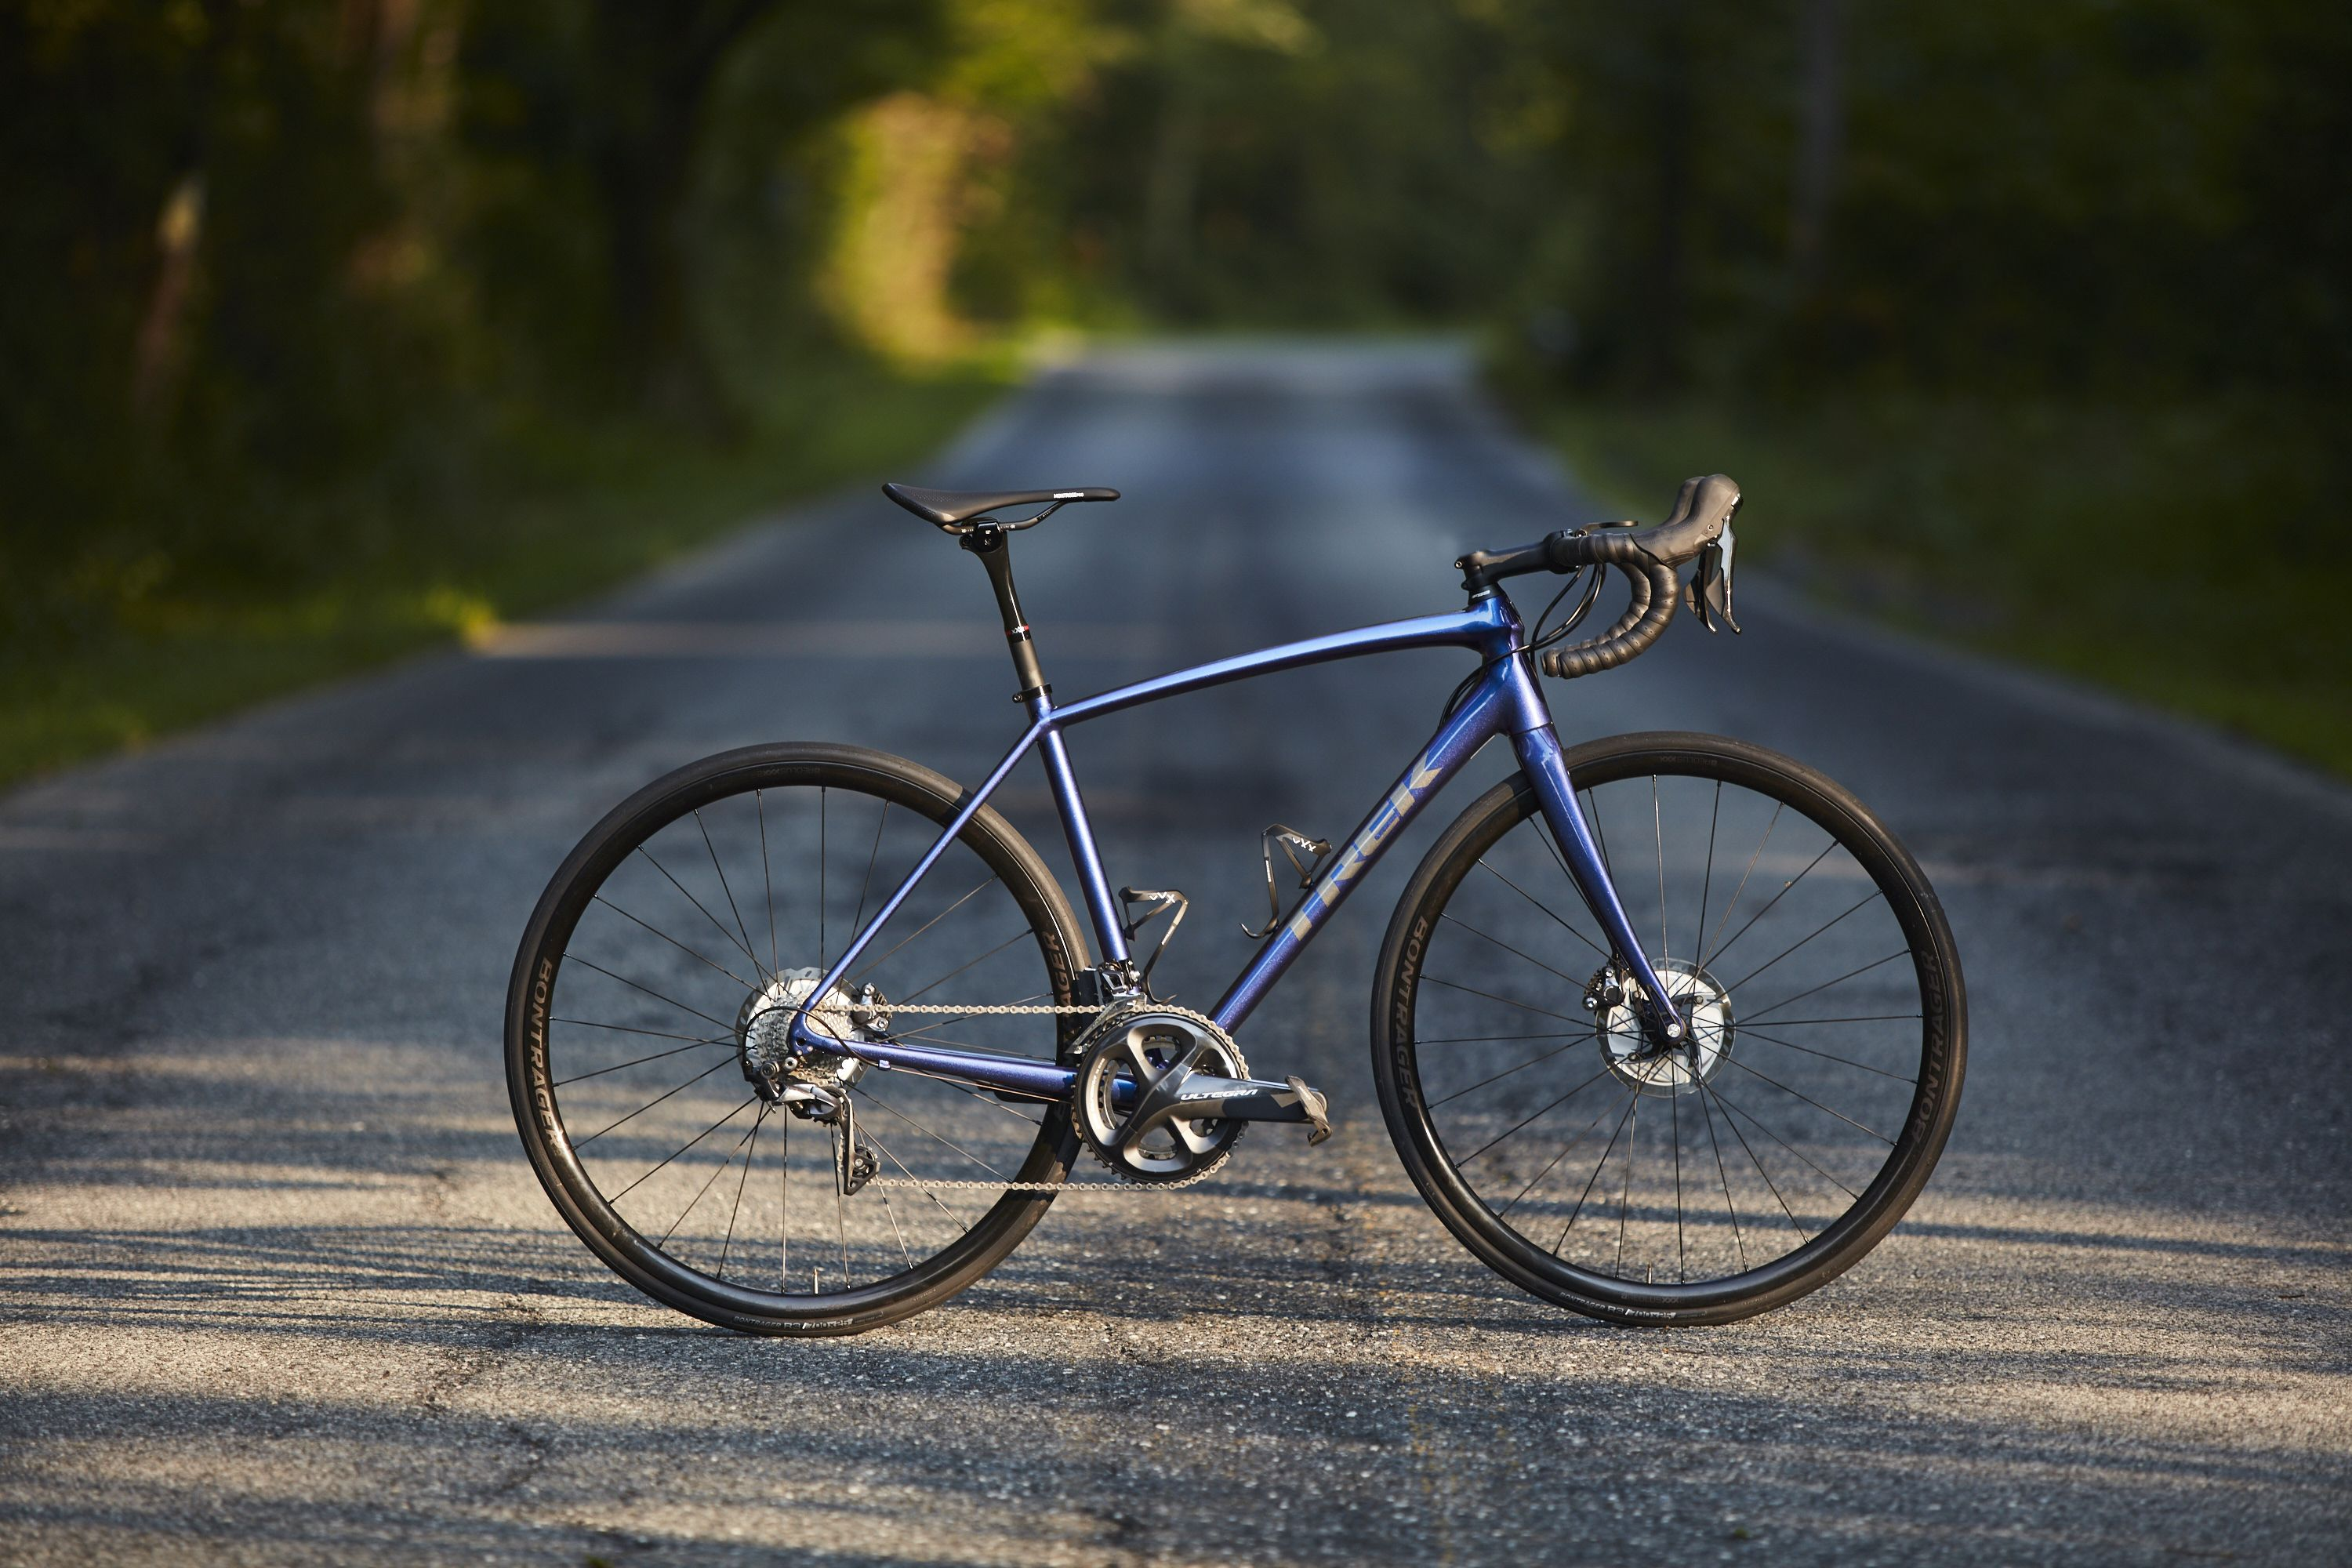 f5244433ad6 Trek Emonda ALR Review - Best Road Bikes